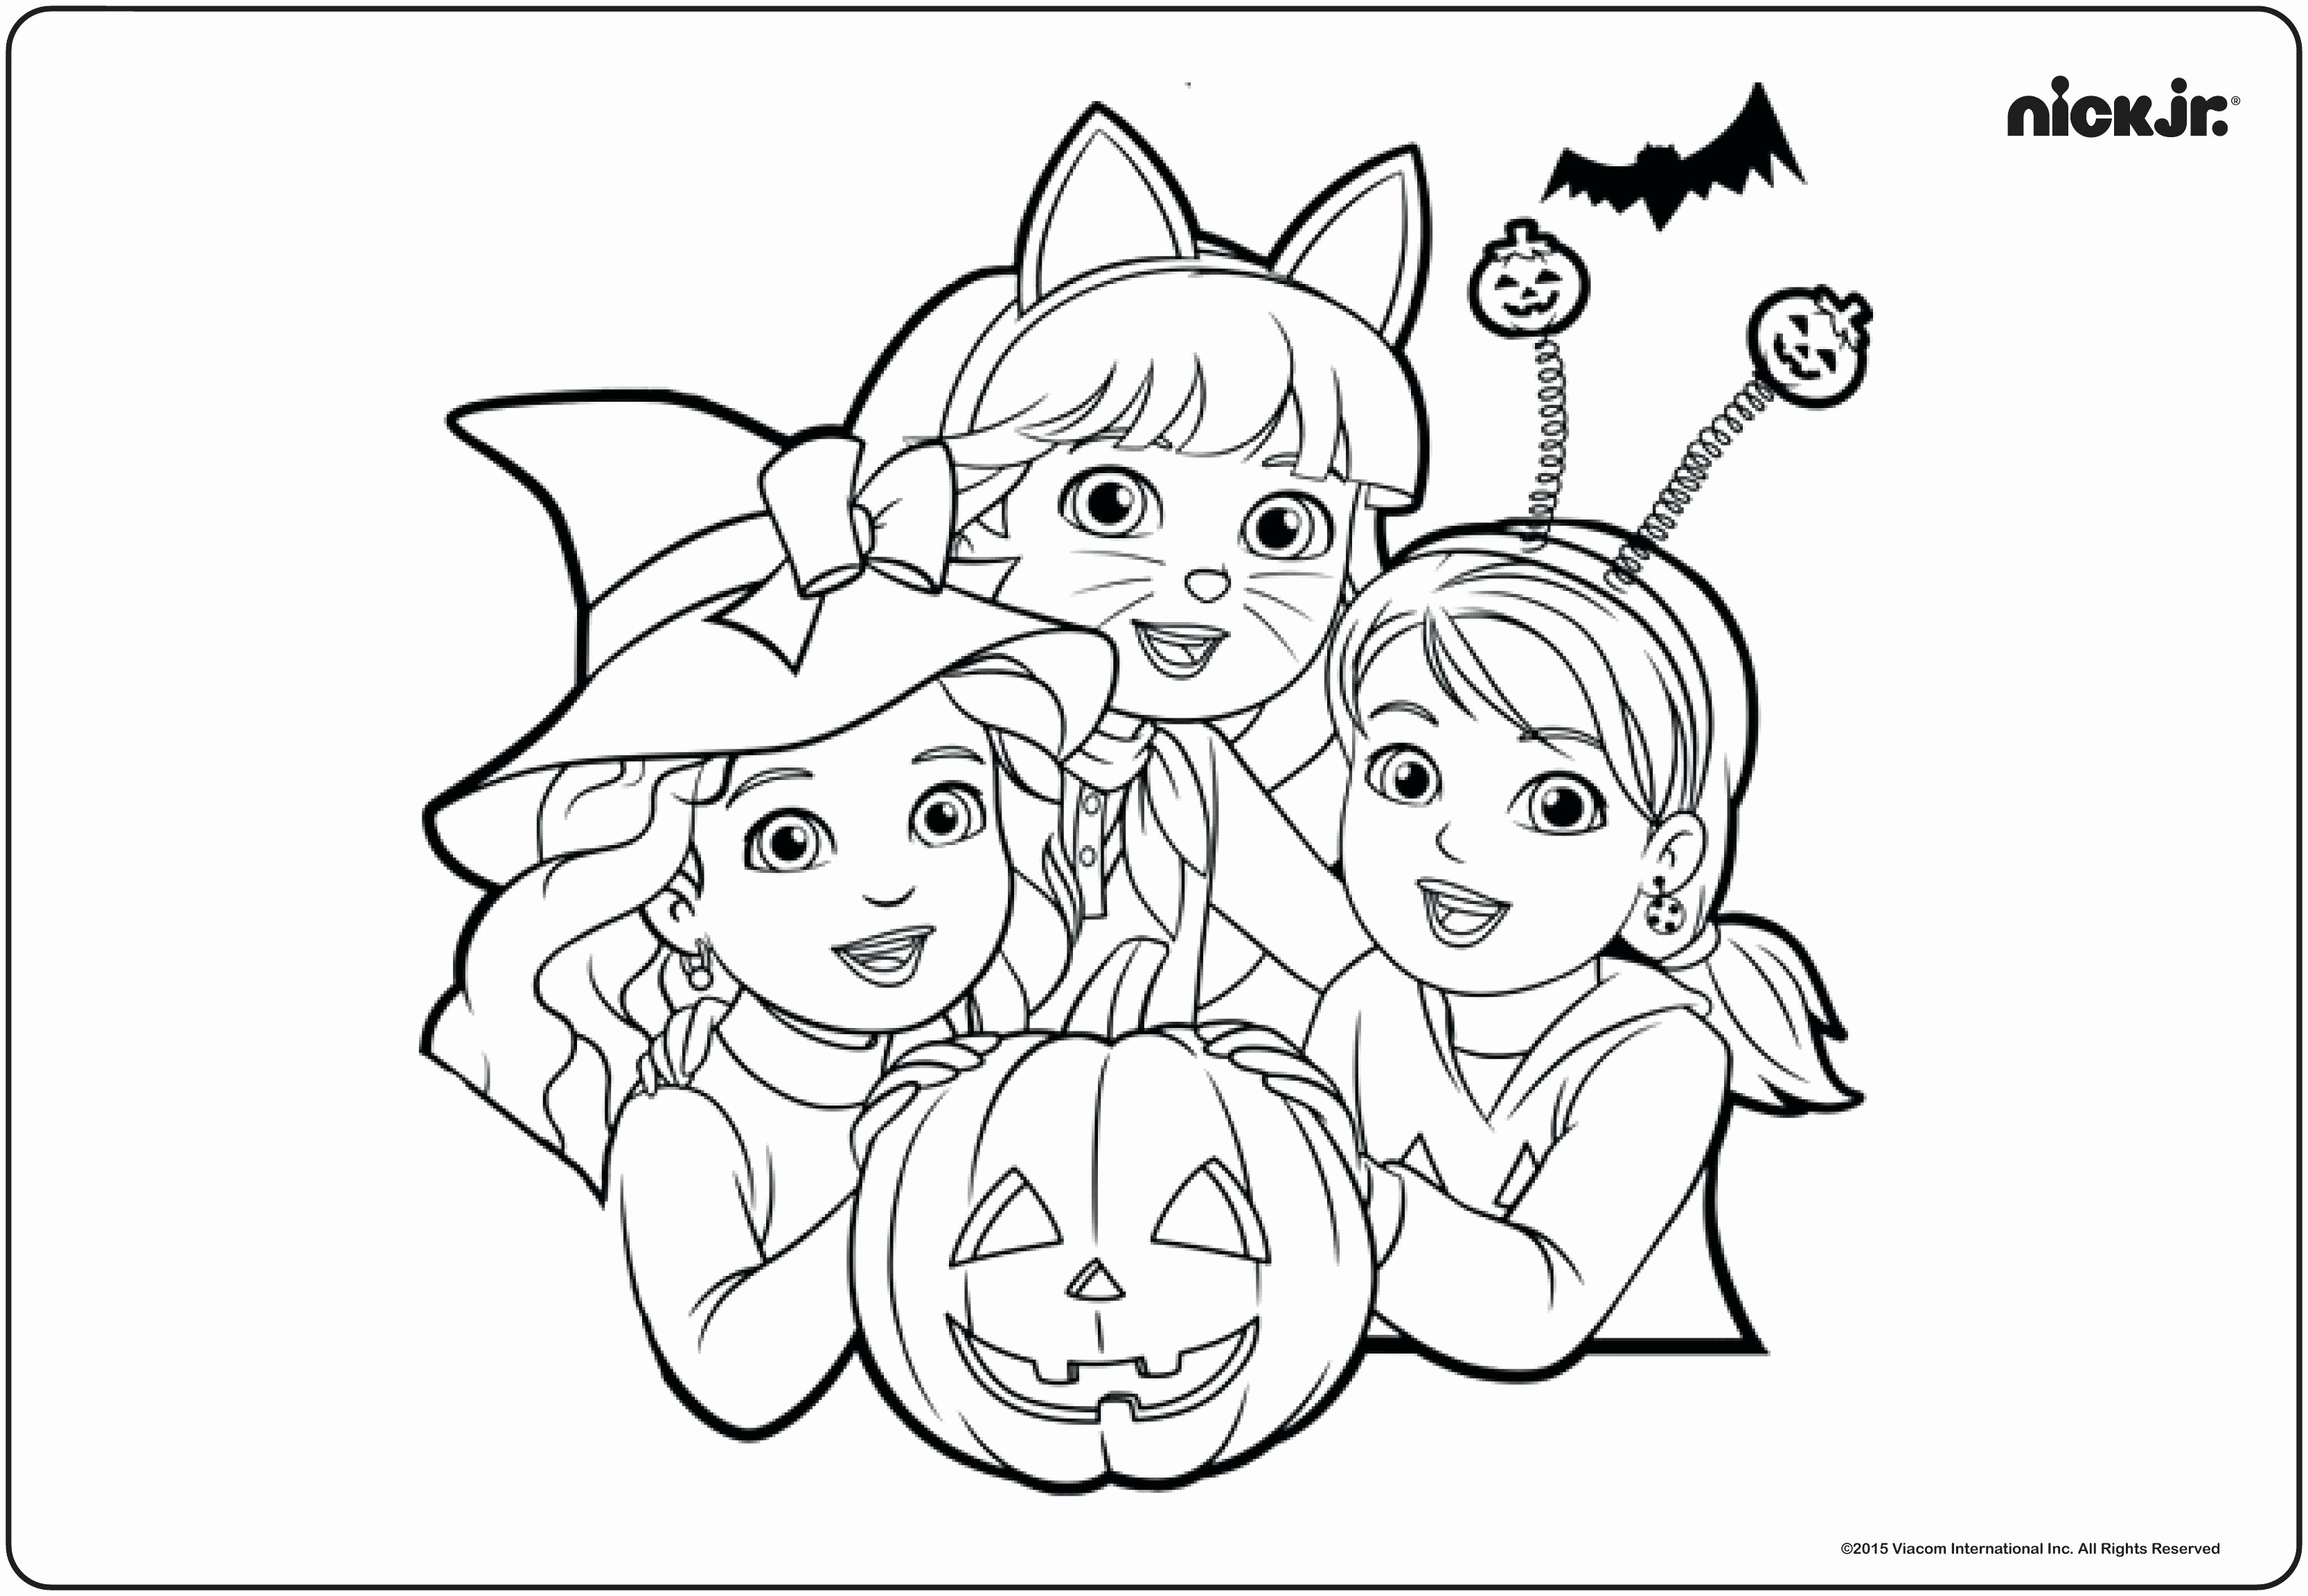 20 Easy Halloween Coloring Pages Collection - Coloring Sheets